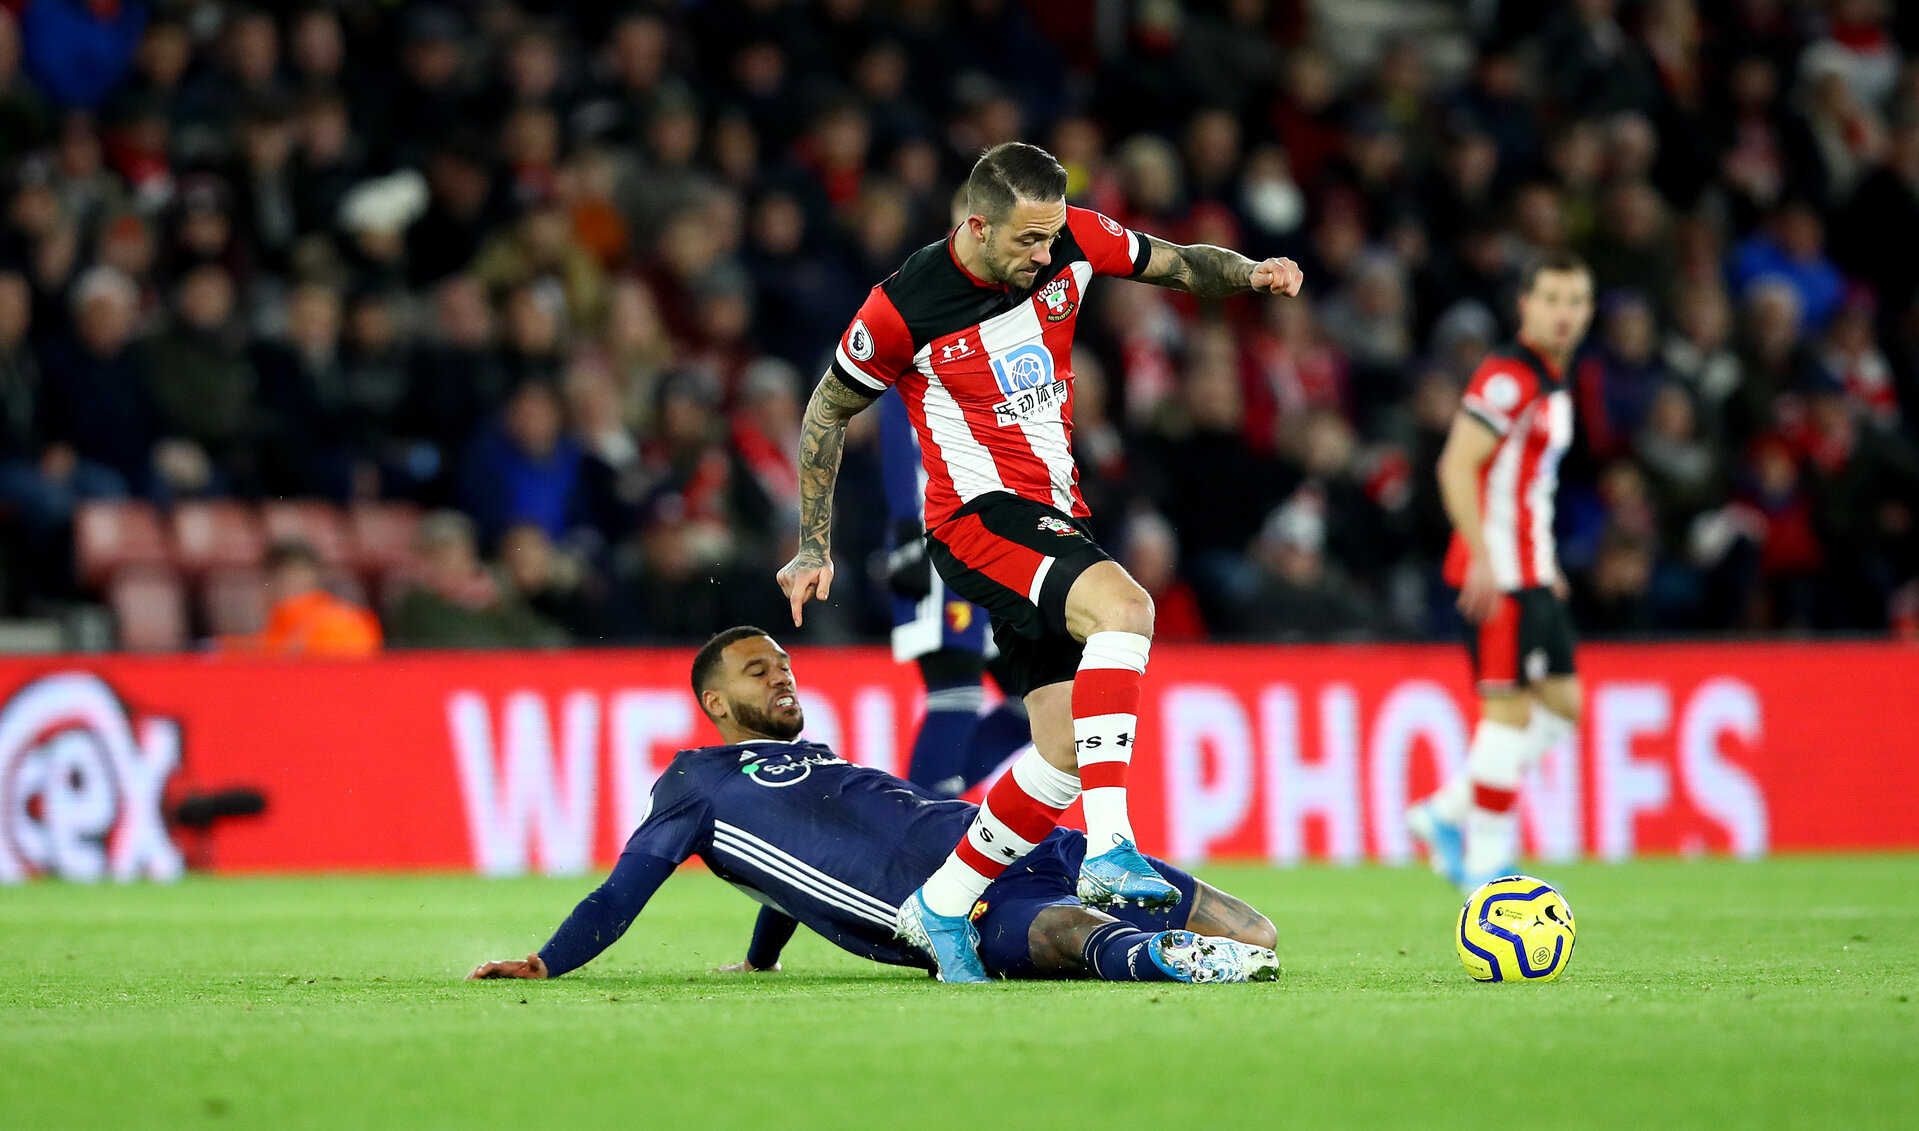 SOUTHAMPTON, ENGLAND - NOVEMBER 30: Danny Ings(R) of Southampton during the Premier League match between Southampton FC and Watford FC at St Mary's Stadium on November 30, 2019 in Southampton, United Kingdom. (Photo by Matt Watson/Southampton FC via Getty Images)